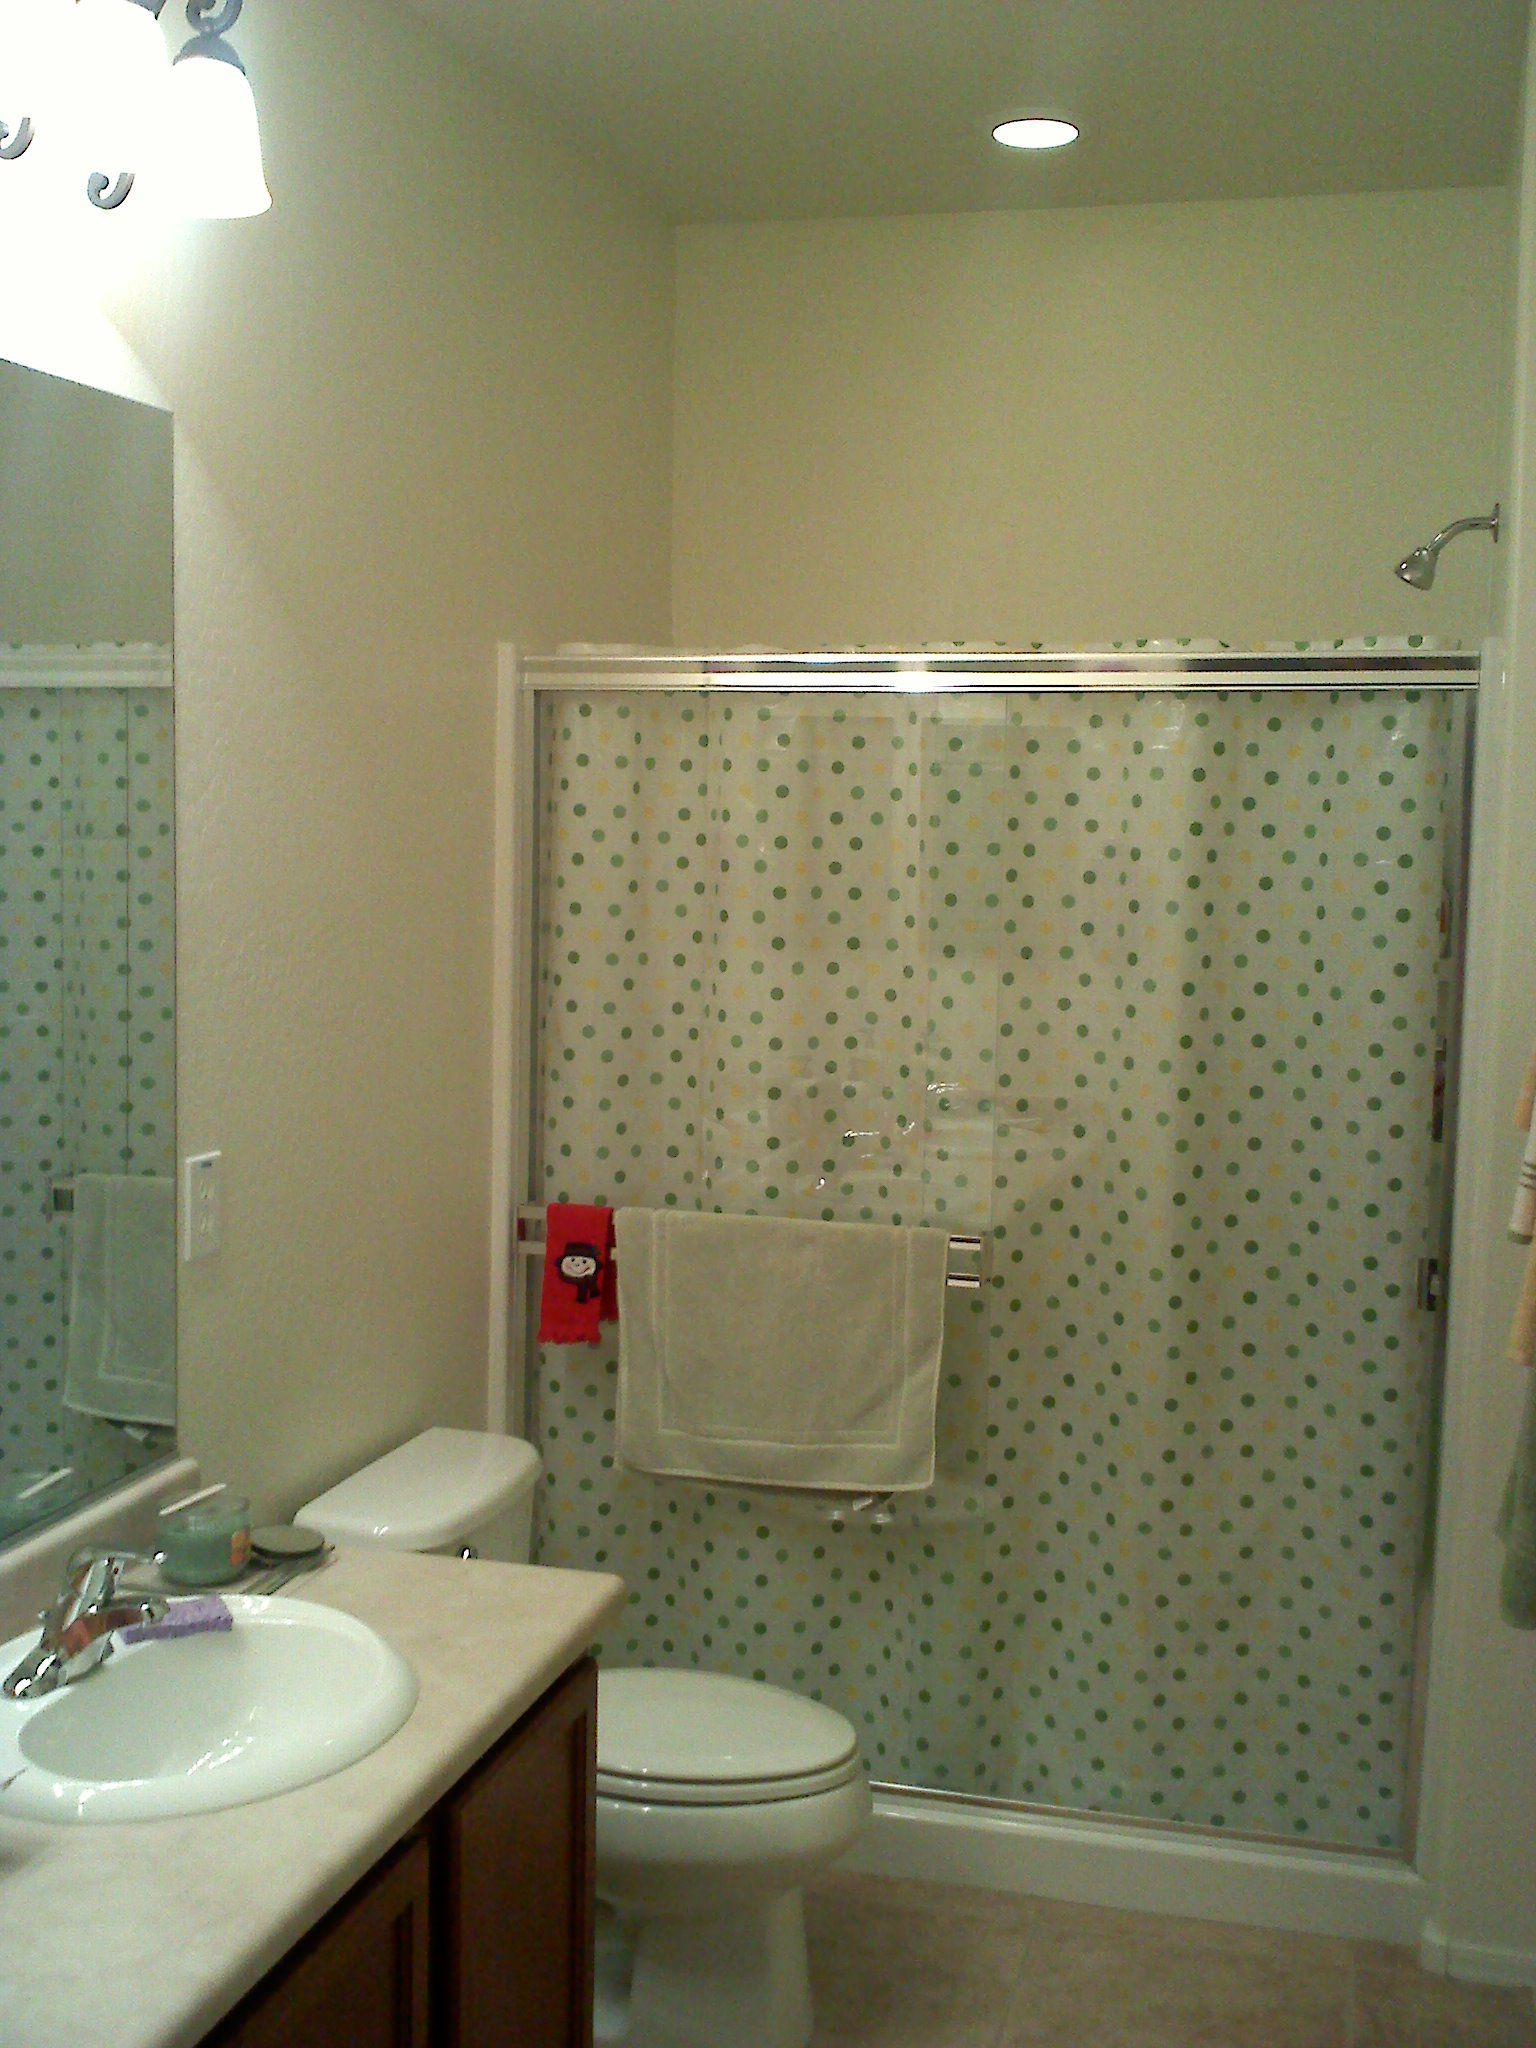 This Is Interesting They Put A Shower Curtain Inside Of The Glass Doors Probably So Wouldnt Have To Squeegee Every Time